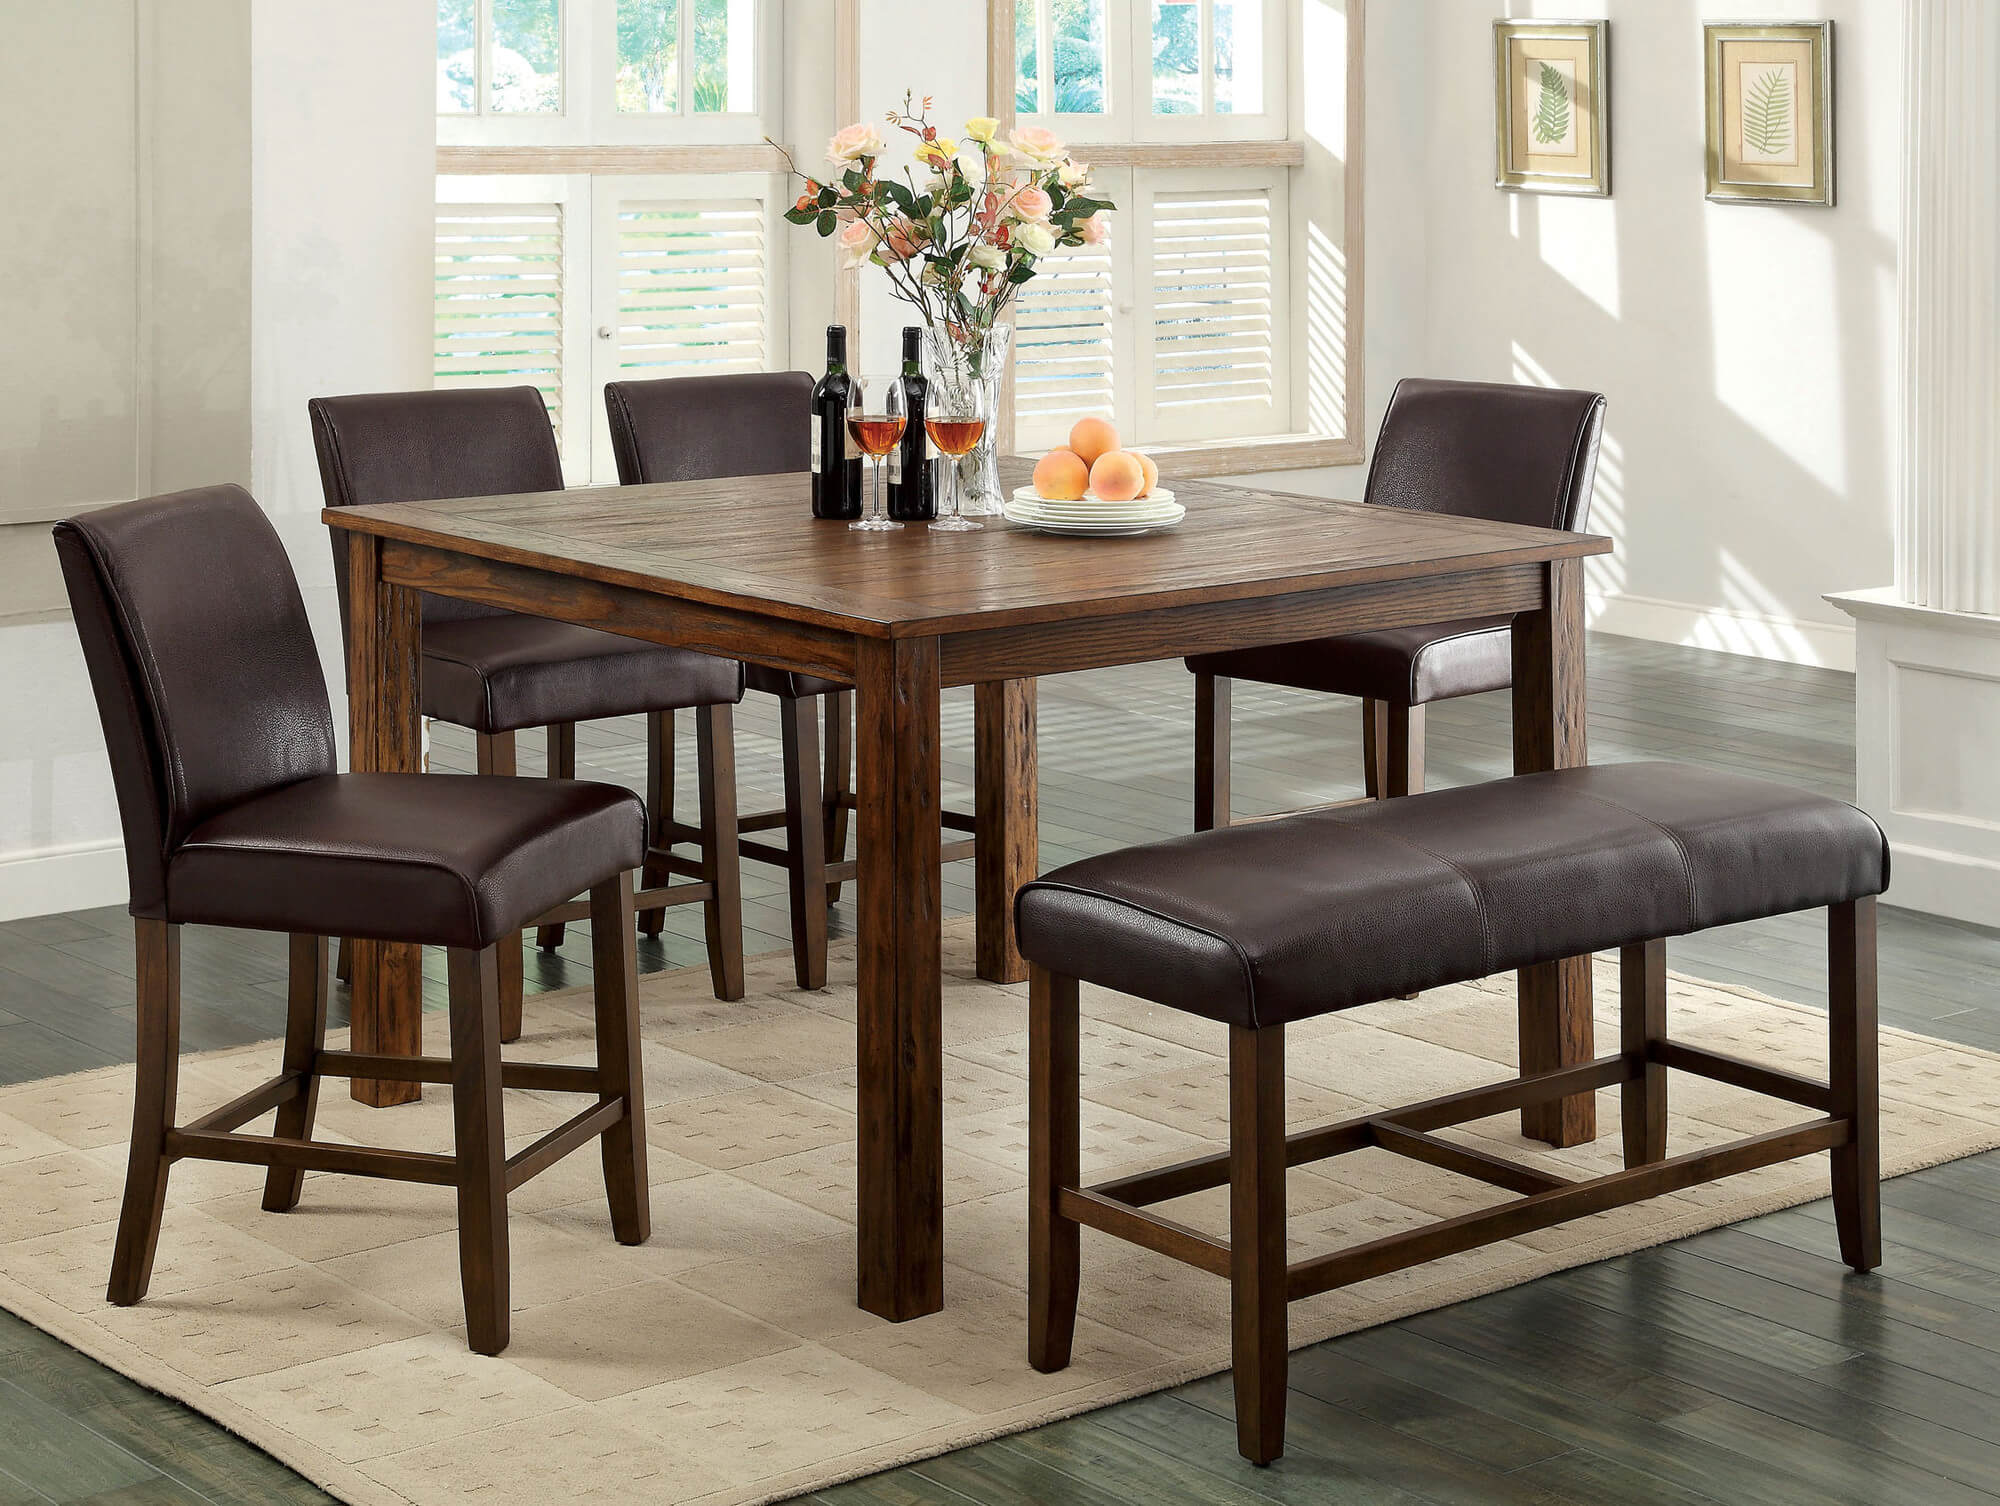 dining set with bench and chairs indoor bistro table 26 room sets big small seating 2019 counter height rustic wood is dark oak finish constructed